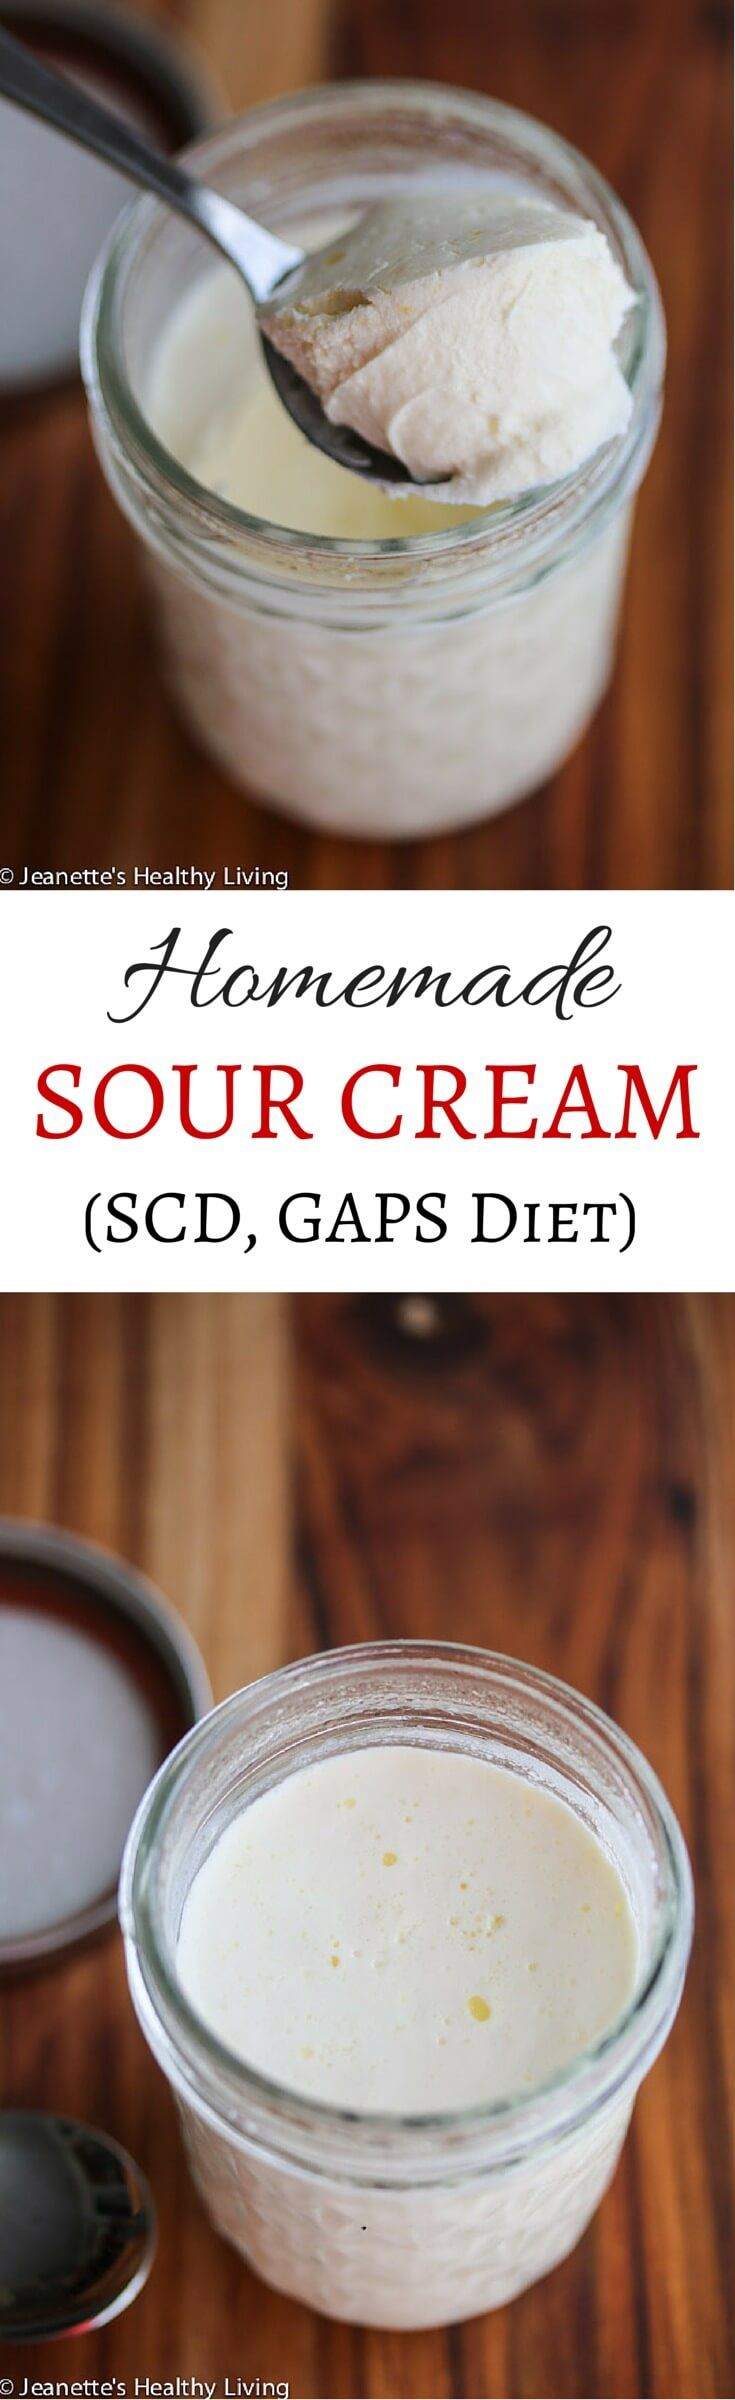 SCD GAPS Diet Sour Cream Creme Fraiche - this is naturally virtually lactose free and makes a decadent base for ice cream ~ http://jeanetteshealthyliving.com